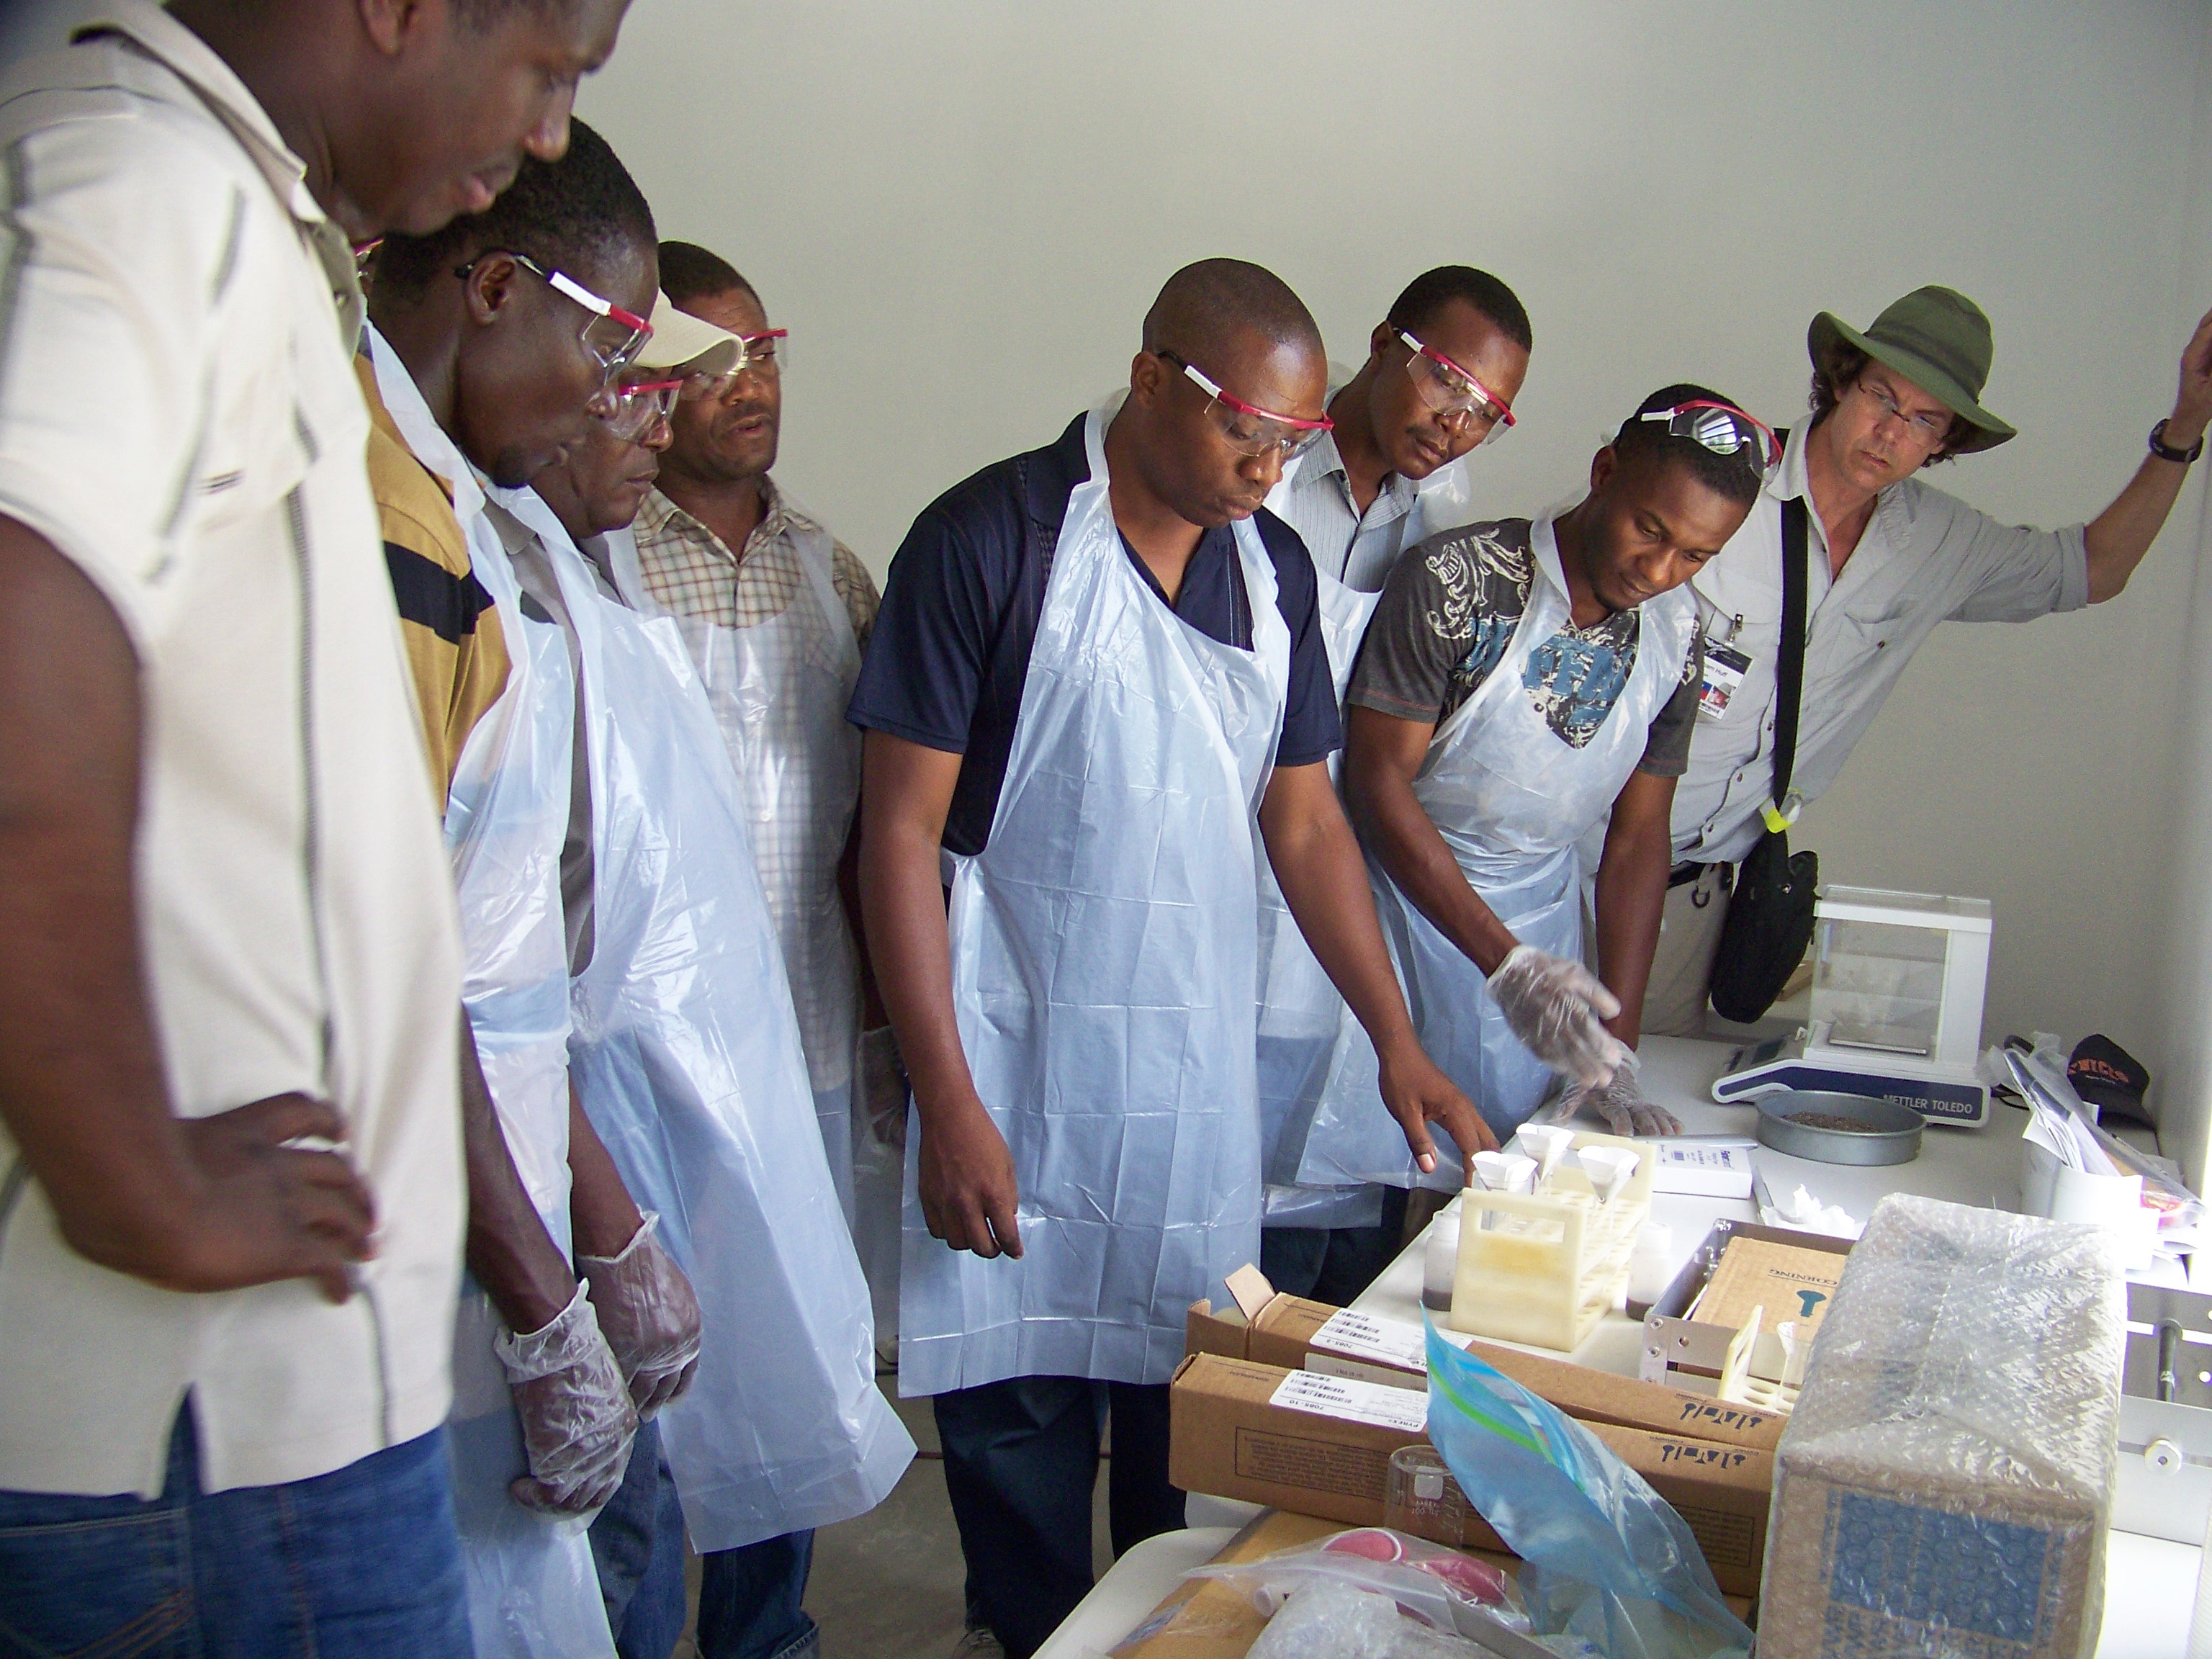 Graham Huff, coordinator of Atlanta-basednonprofit League of Hope, watches as group of Hatian teachers and school officials go through a battery of tests in the new soil-testing lab. The lab is the only working soil lab in Haiti.